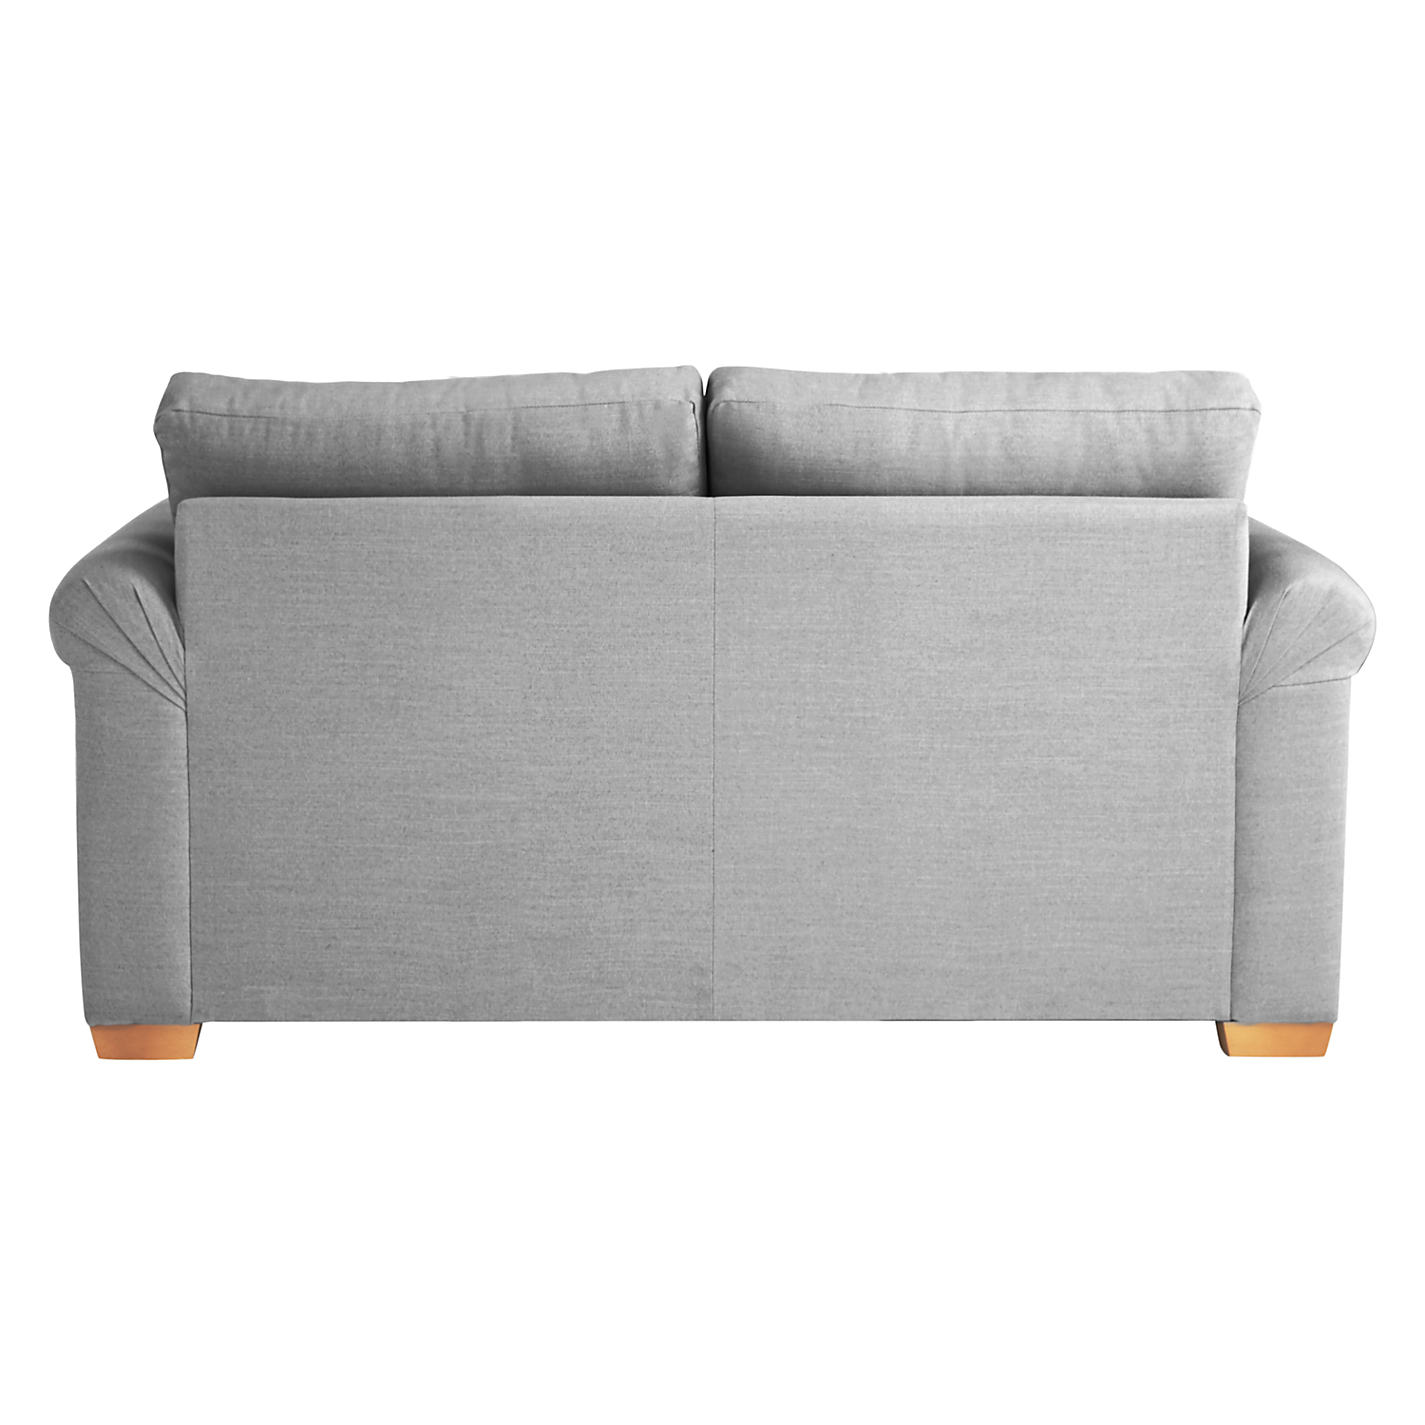 ... buy john lewis malone 2 seater small sofa bed with pocket sprung CMEIKVP